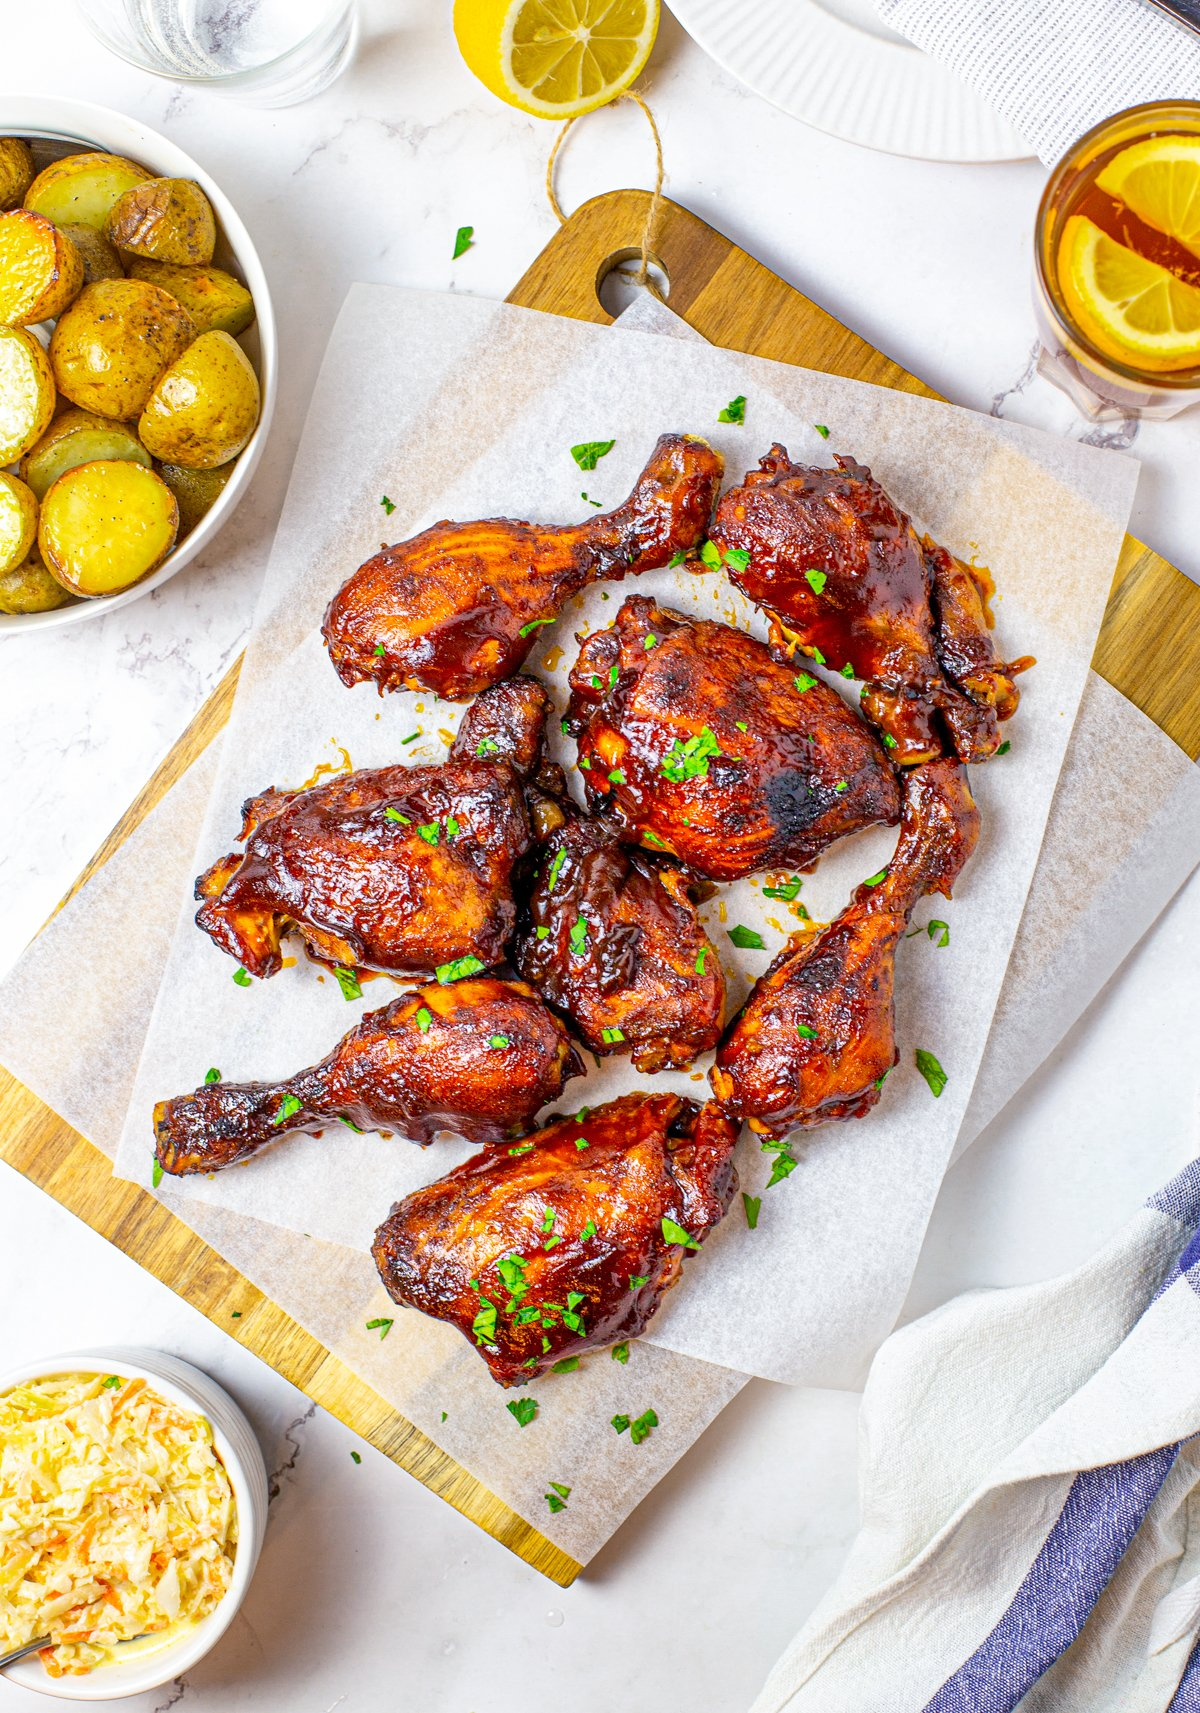 Overhead photo of BBQ Chicken on parchment paper over cutting board